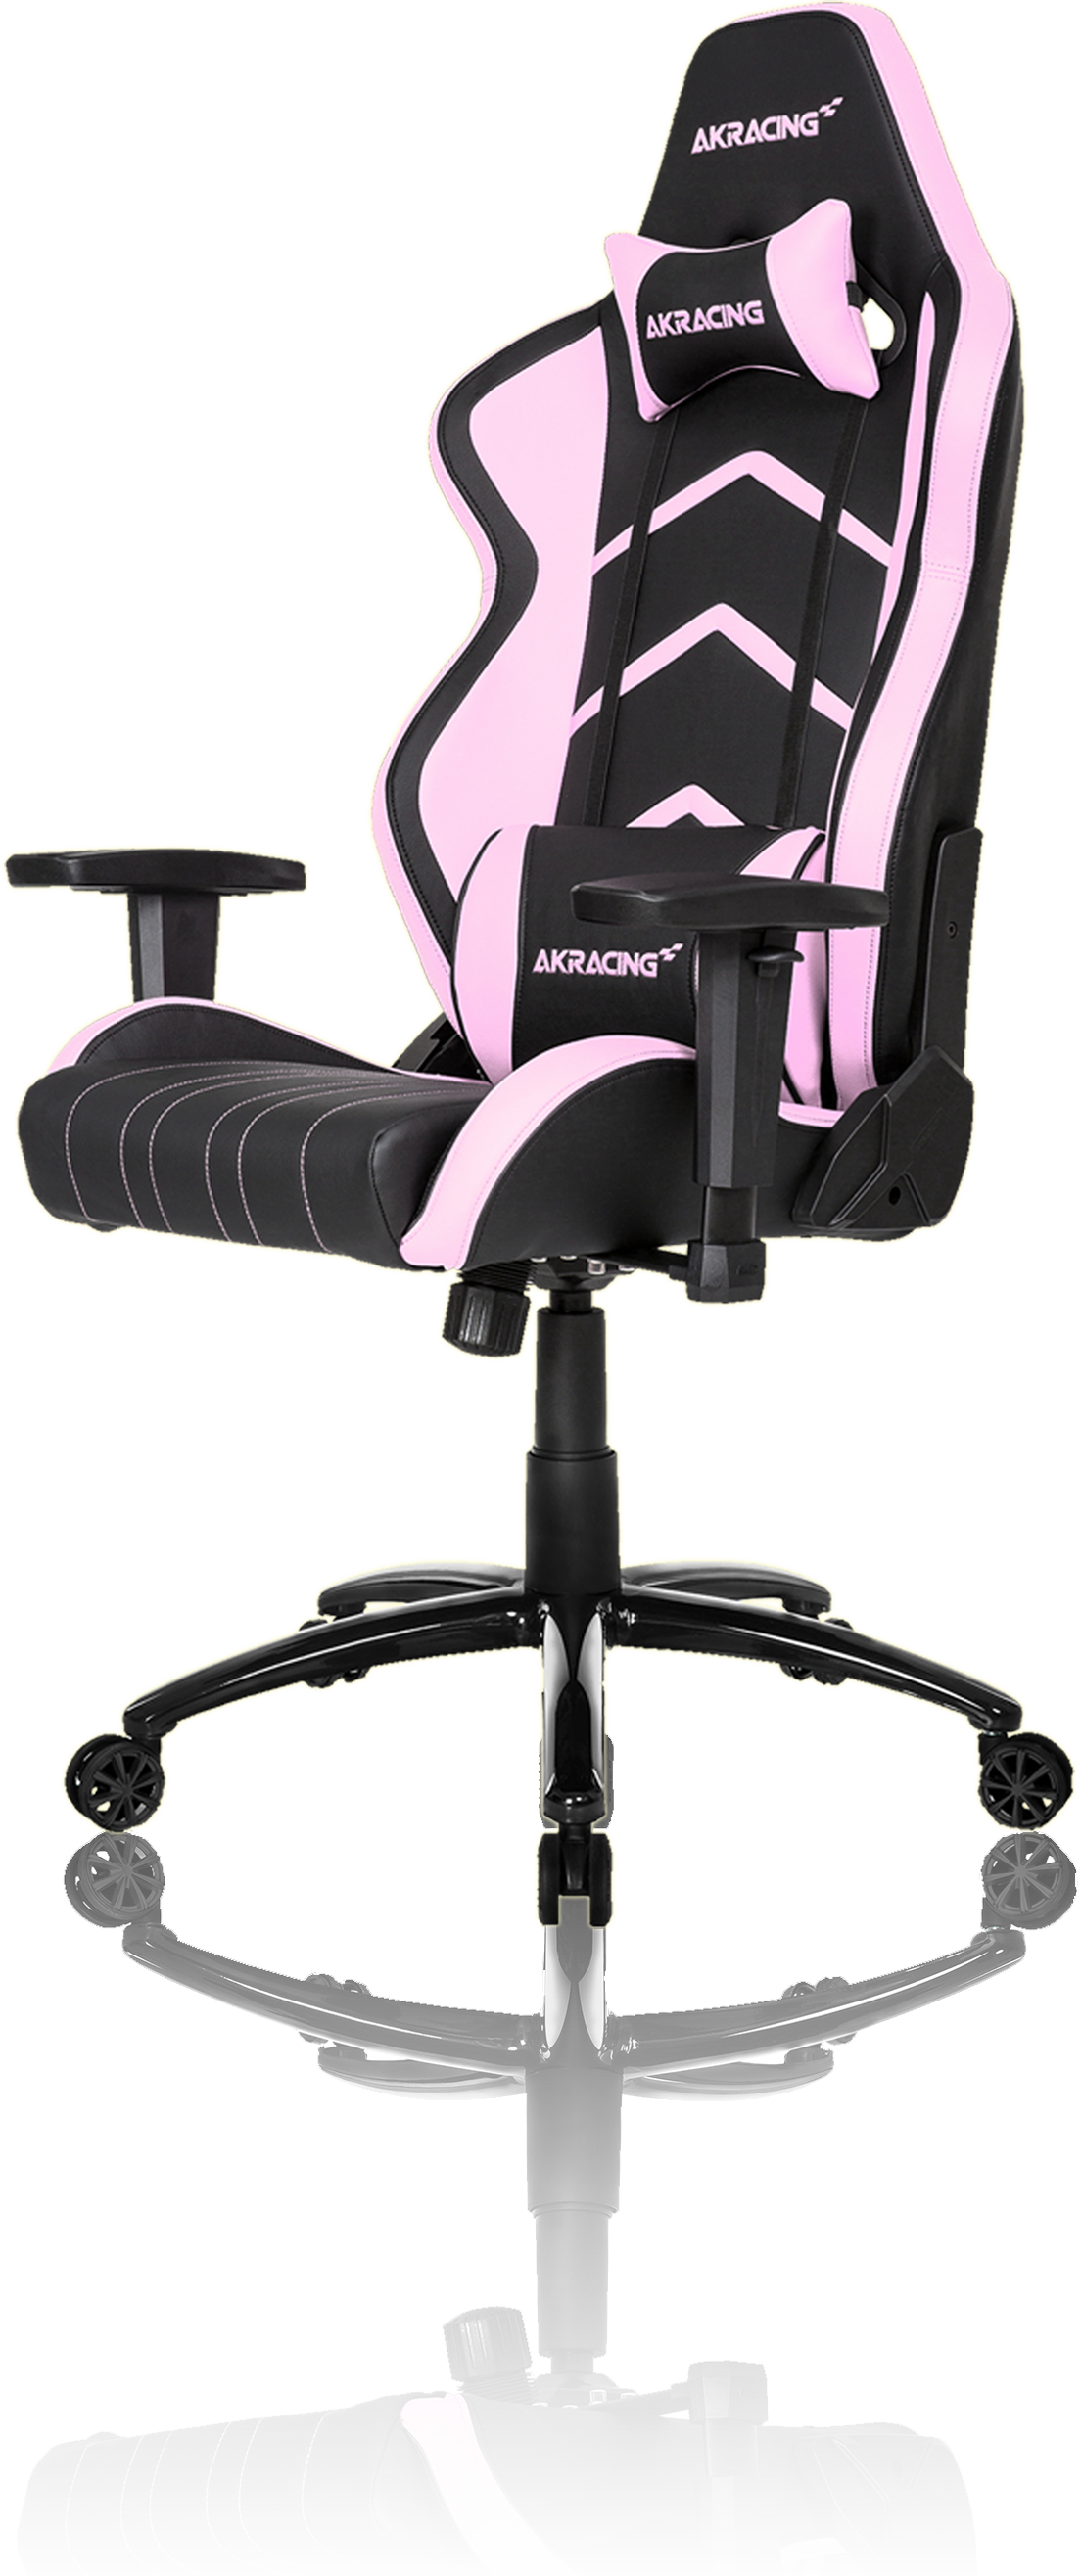 Astonishing Akracing Player Gaming Chair Black Pink Machost Co Dining Chair Design Ideas Machostcouk